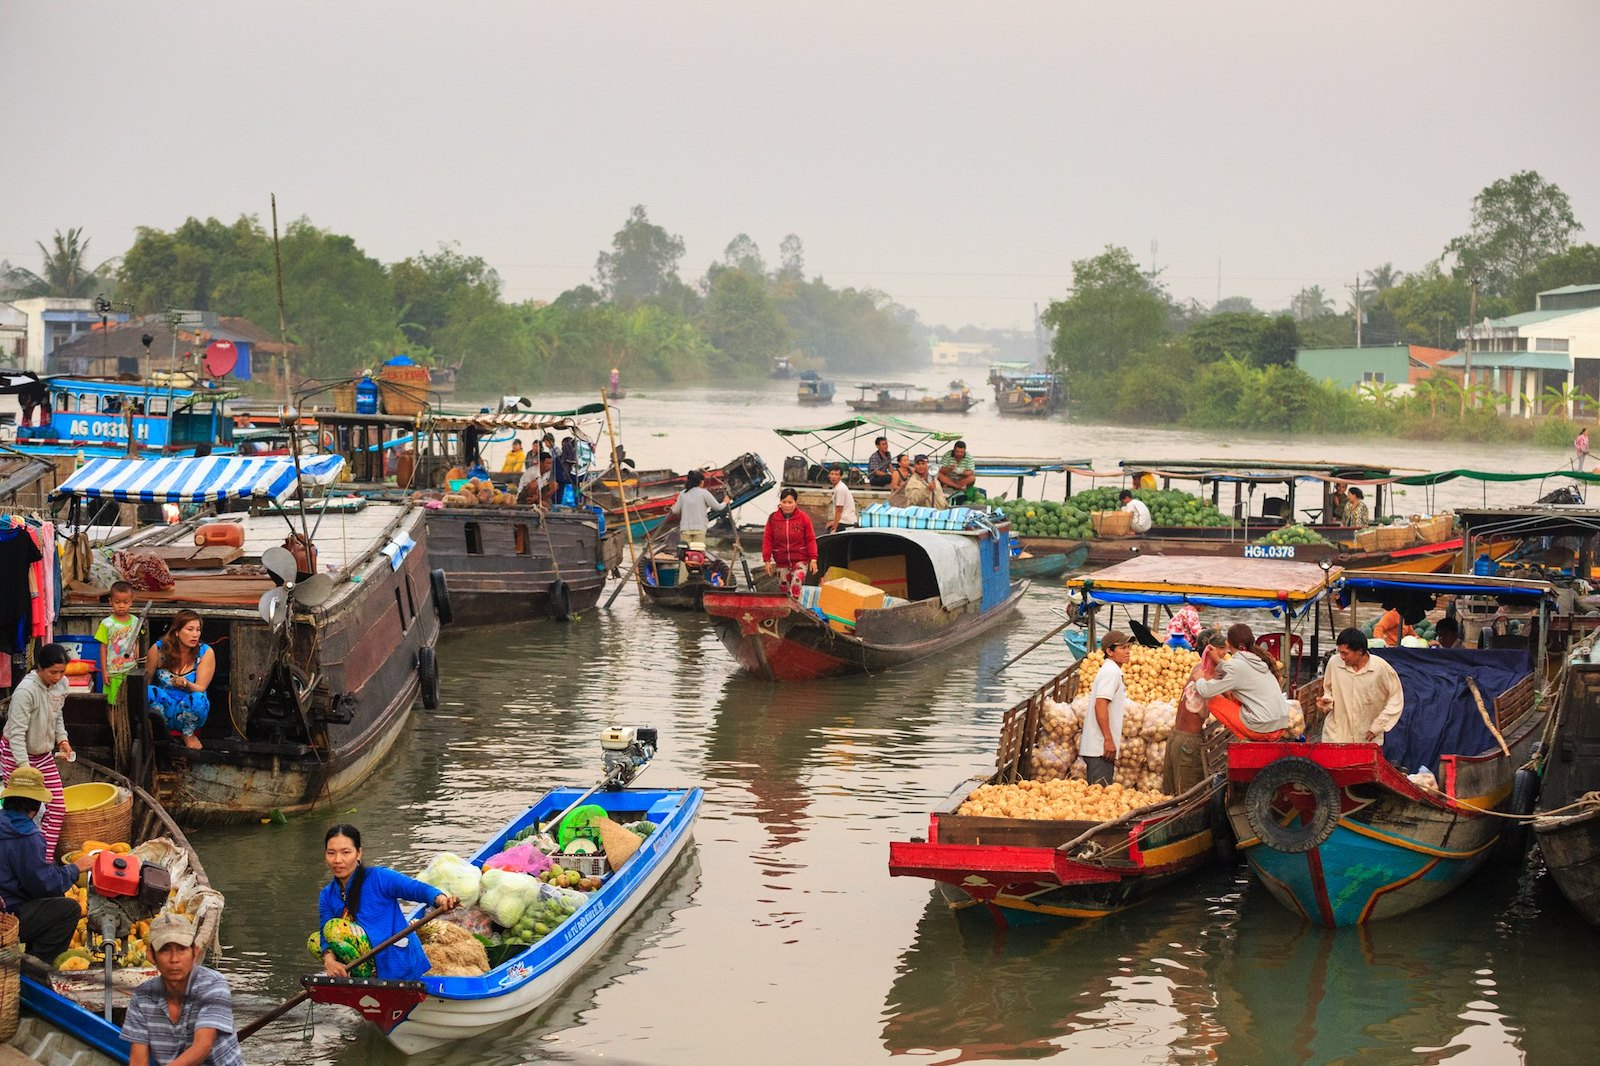 Image of a floating market in Vietnam